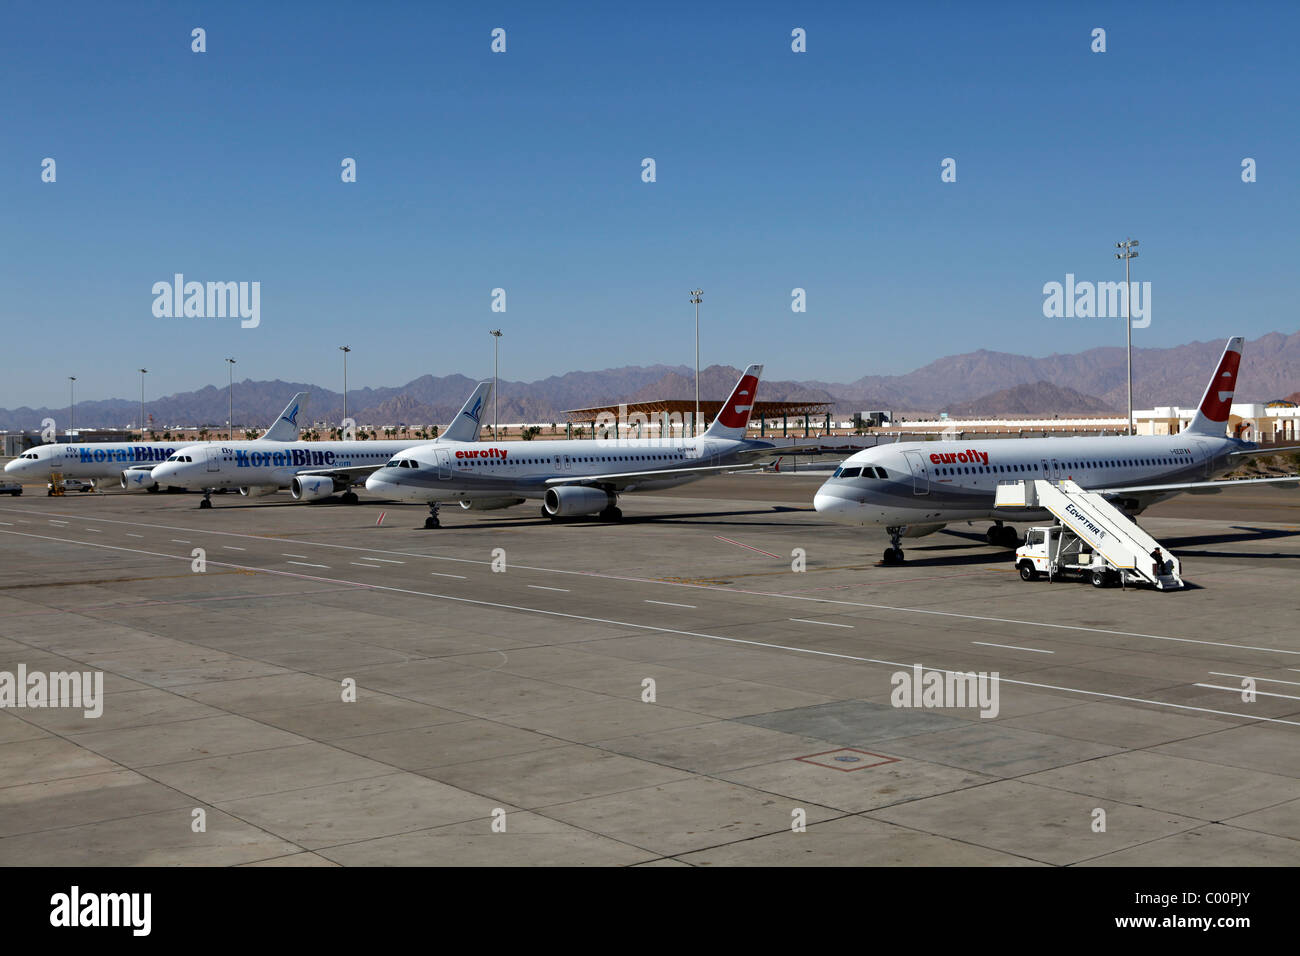 Aircraft stand on the runway at Sharm el-Sheikh International Airport in Egypt. - Stock Image